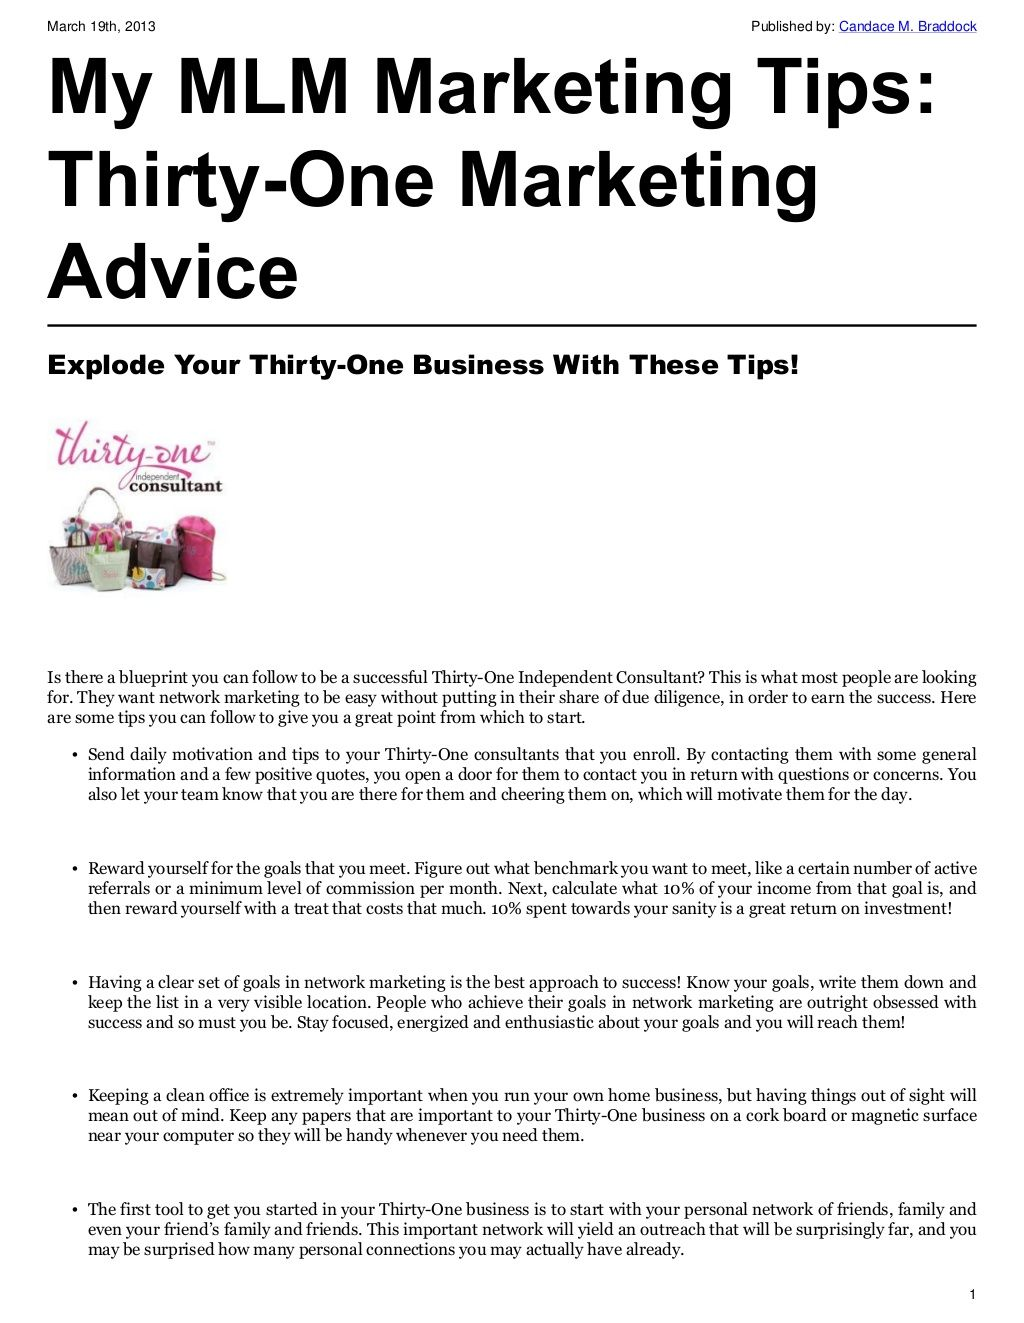 Explode your thirty one business with these tips thirtyone explode your thirty one business with these tips malvernweather Gallery